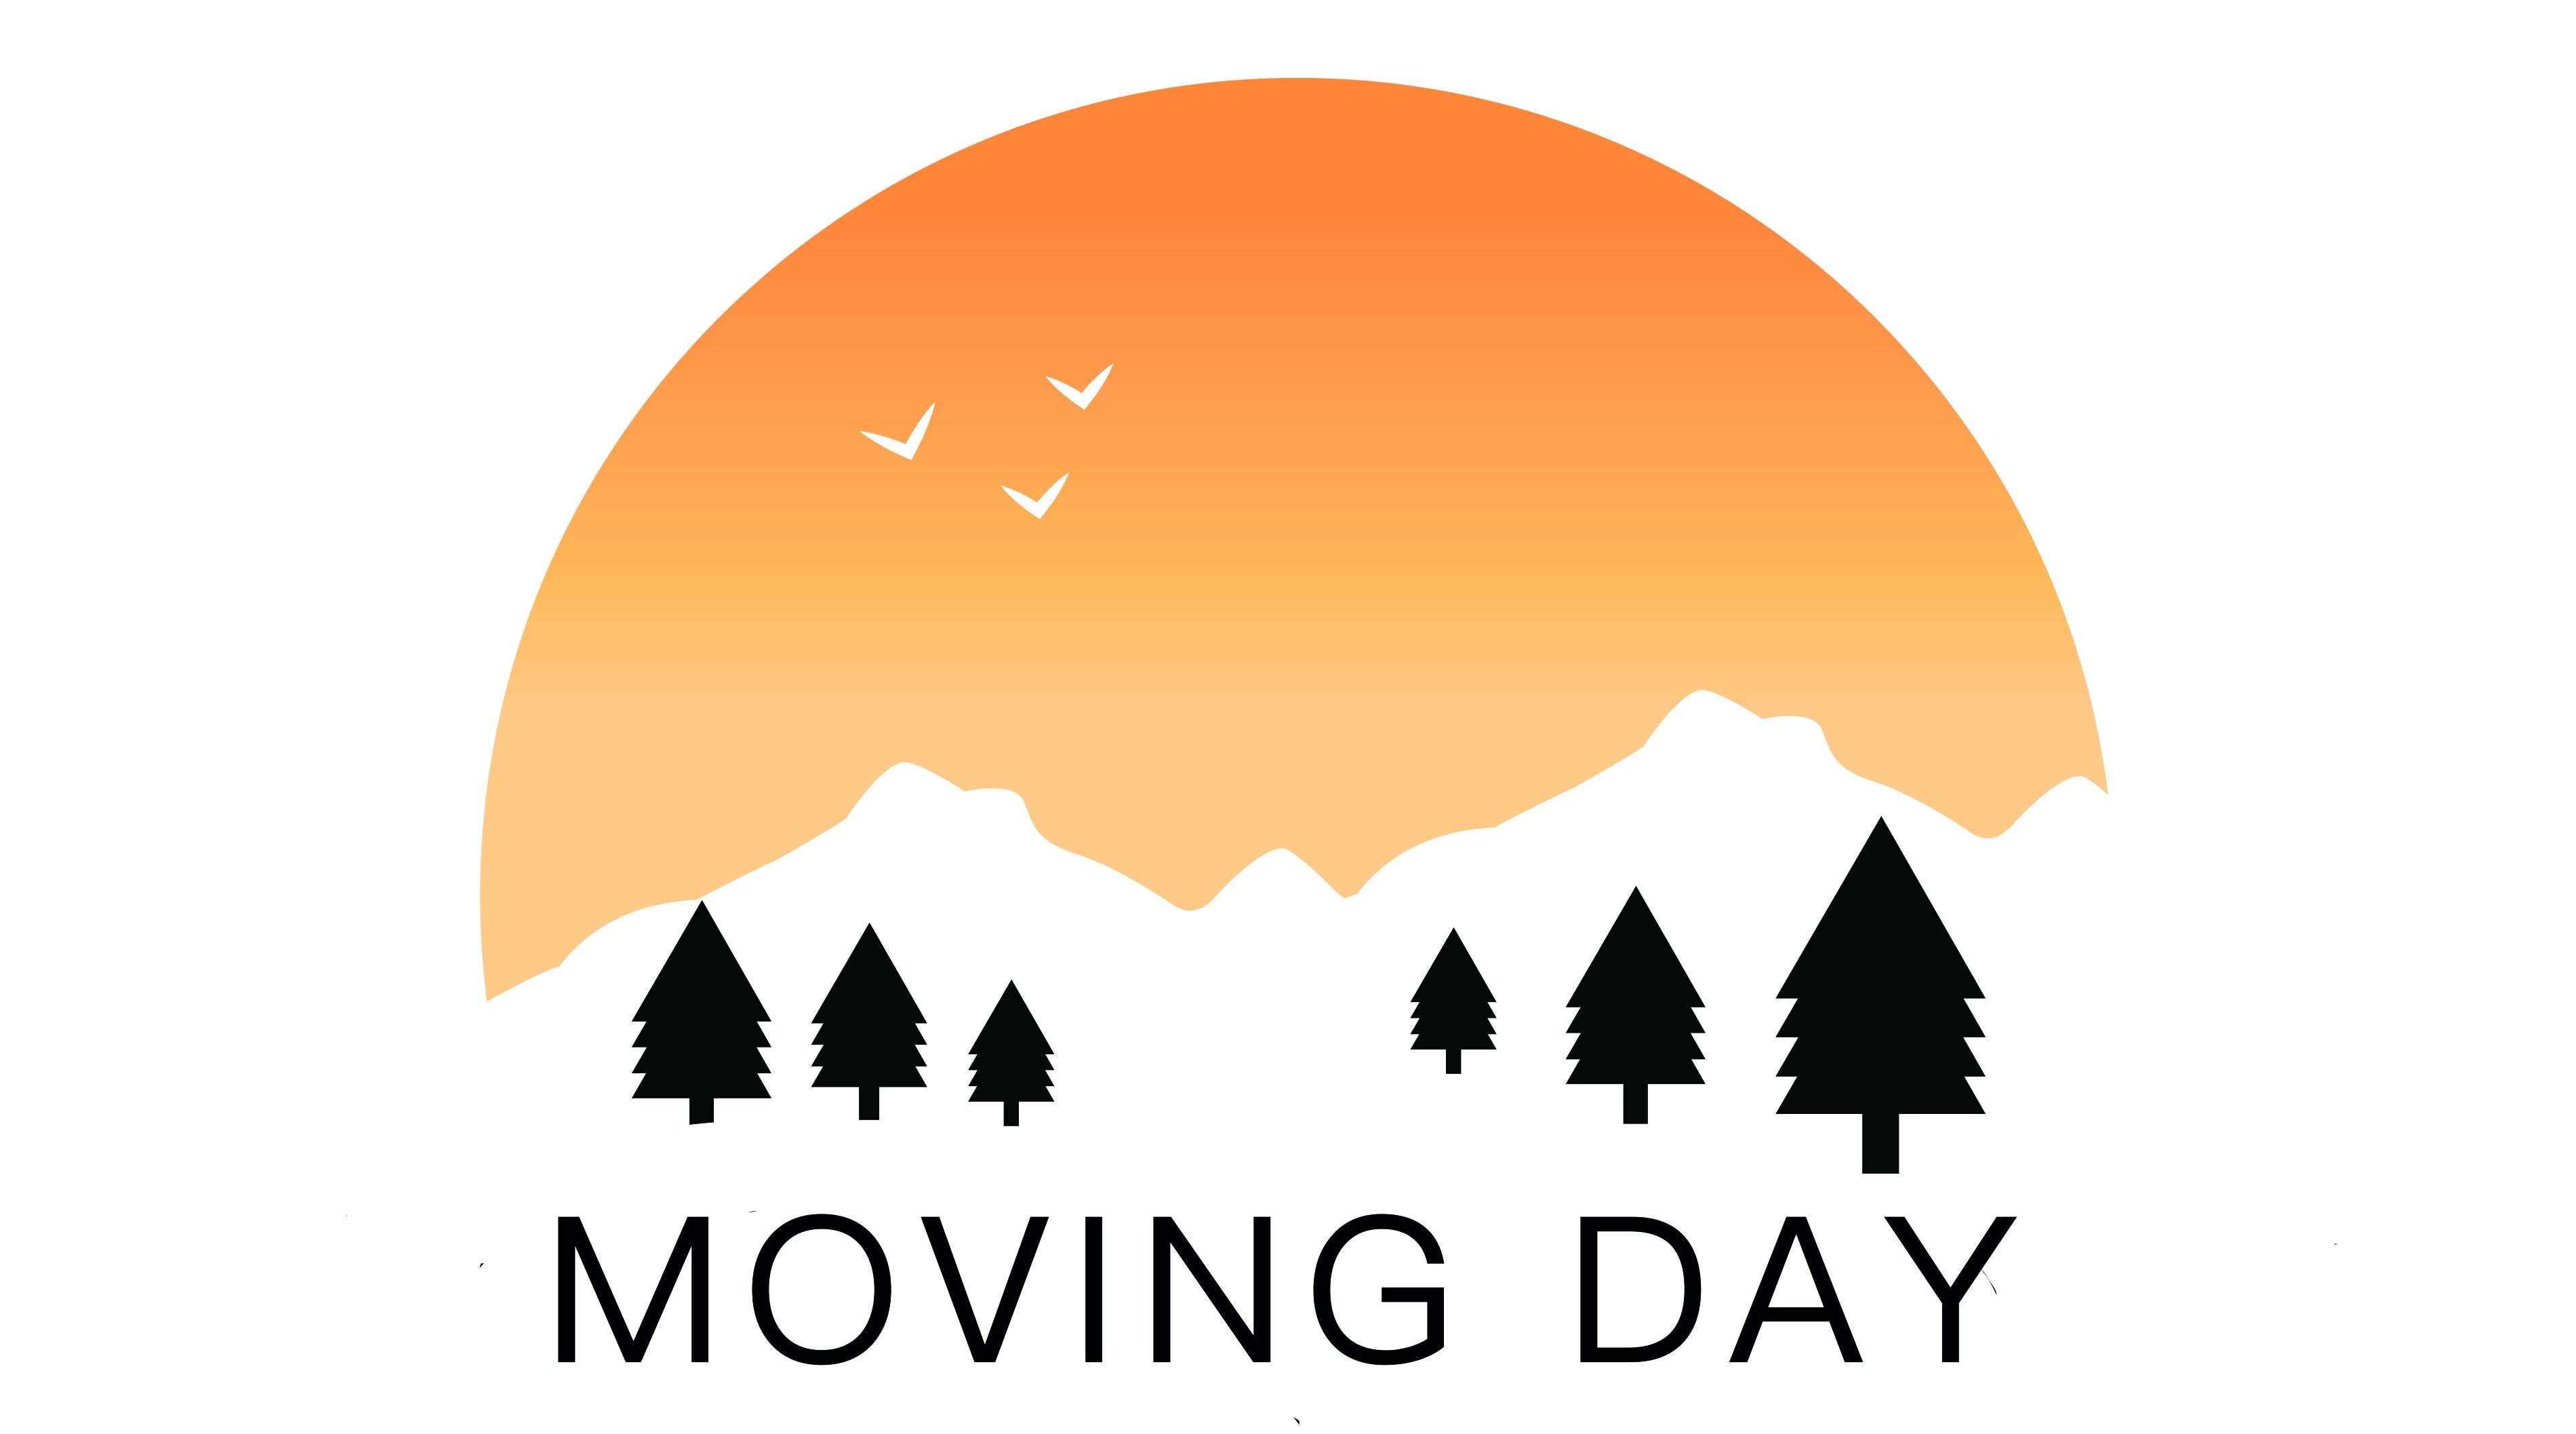 Keep calm, it's moving day